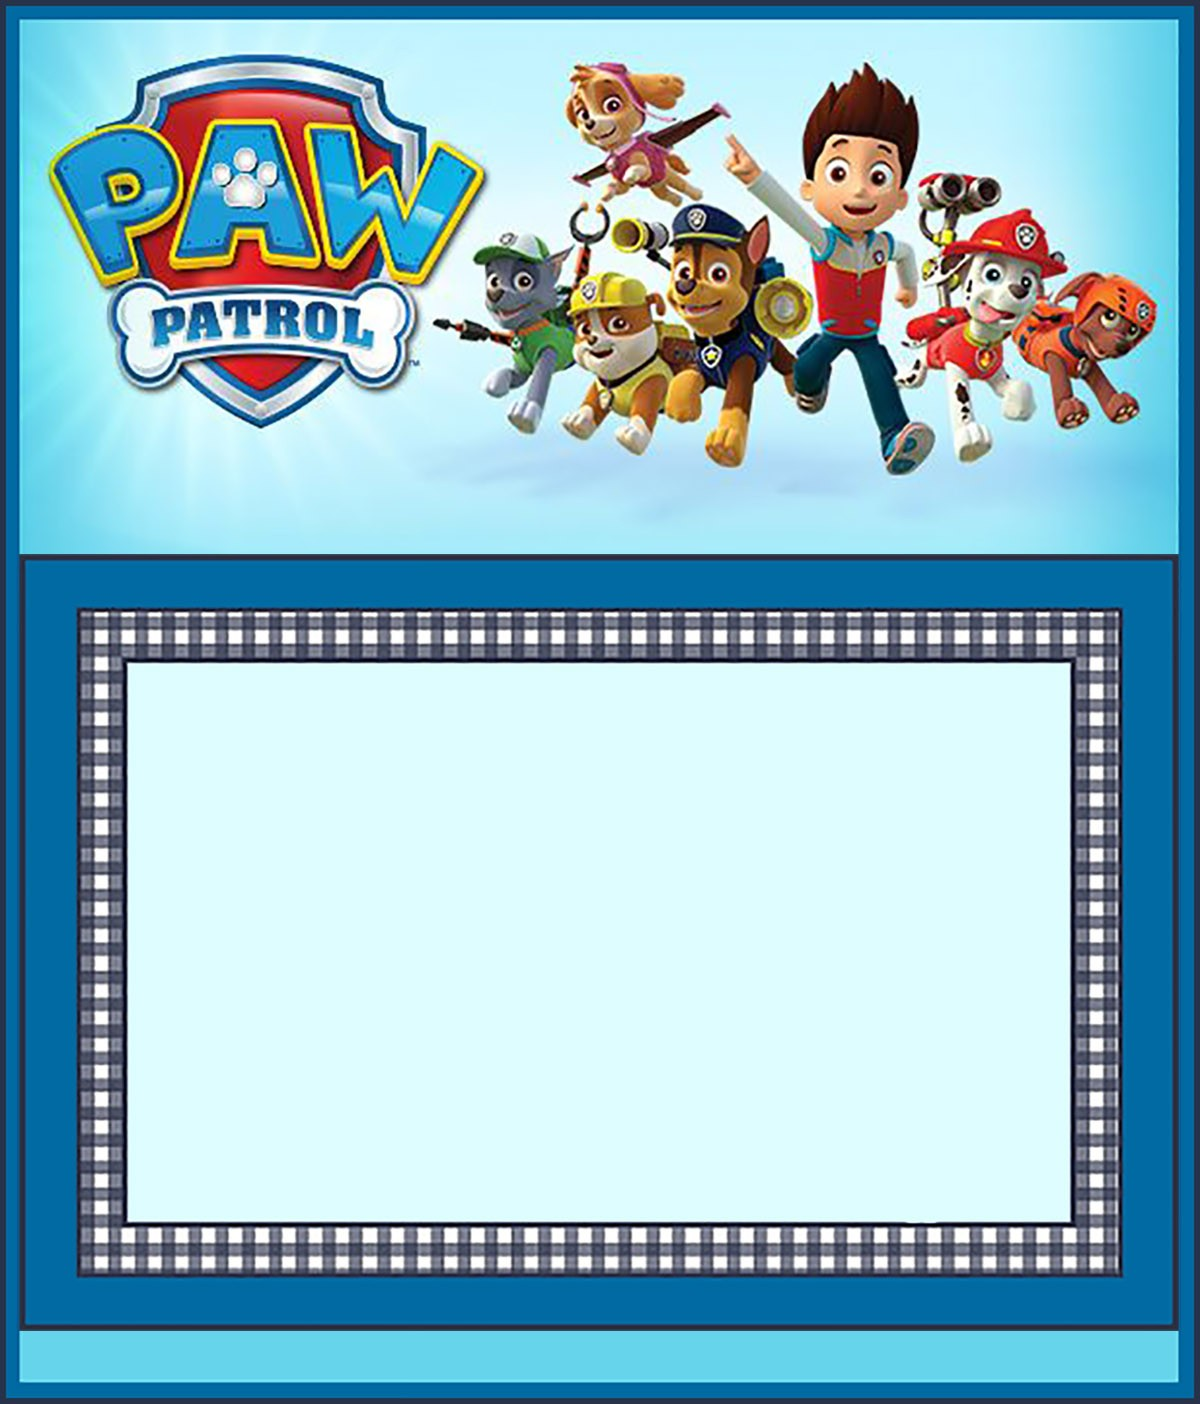 paw patrol birthday invitation template ; Free-Paw-Patrol-Invitation-Template